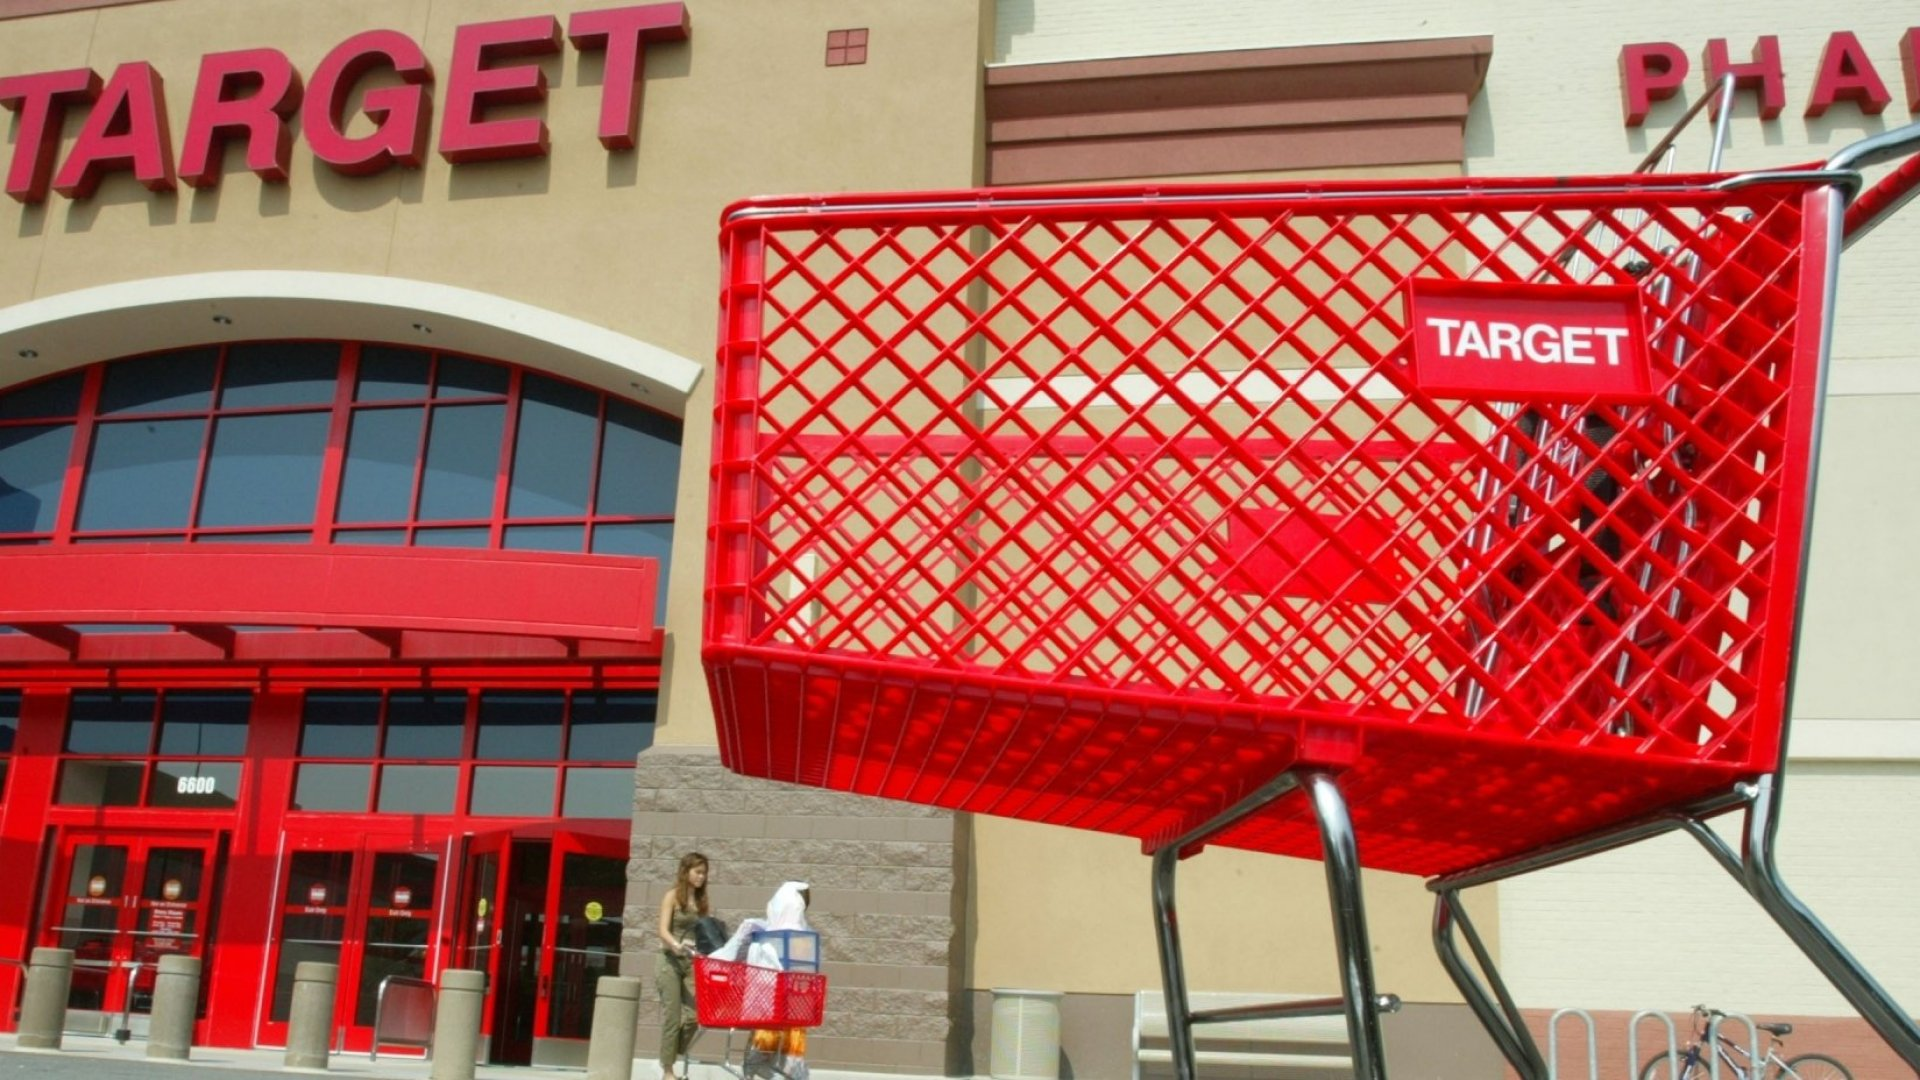 Target Suffers Pair of Outages and It's a Reminder We're All Just 1 Technology Fail Away From Chaos